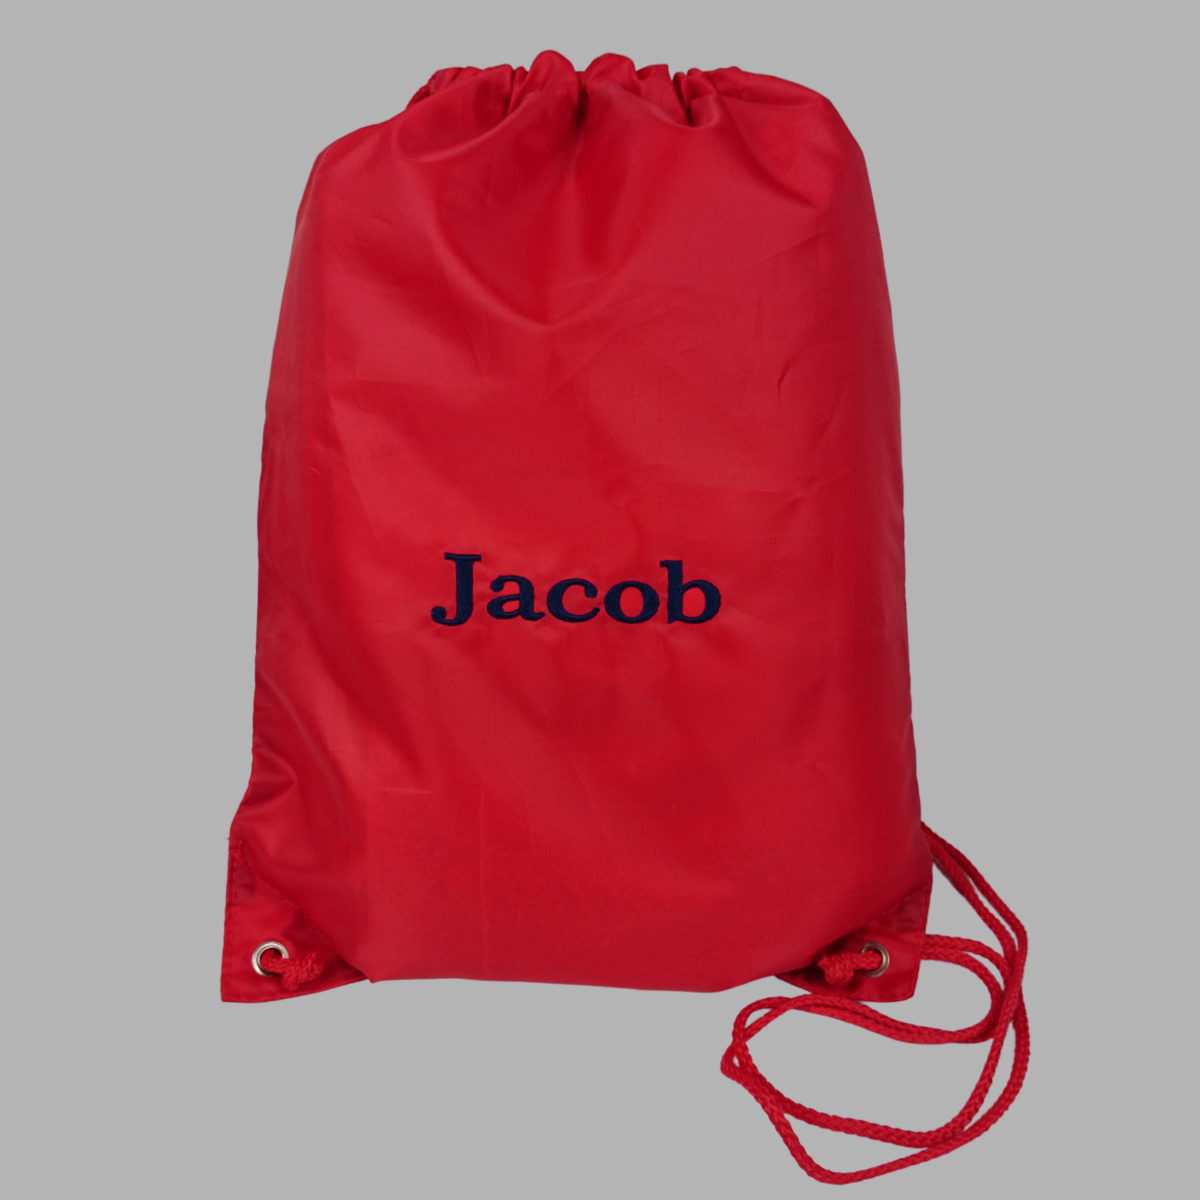 Personalised PE or swimming bag shown in red with a name embroidered in navy blue thread.